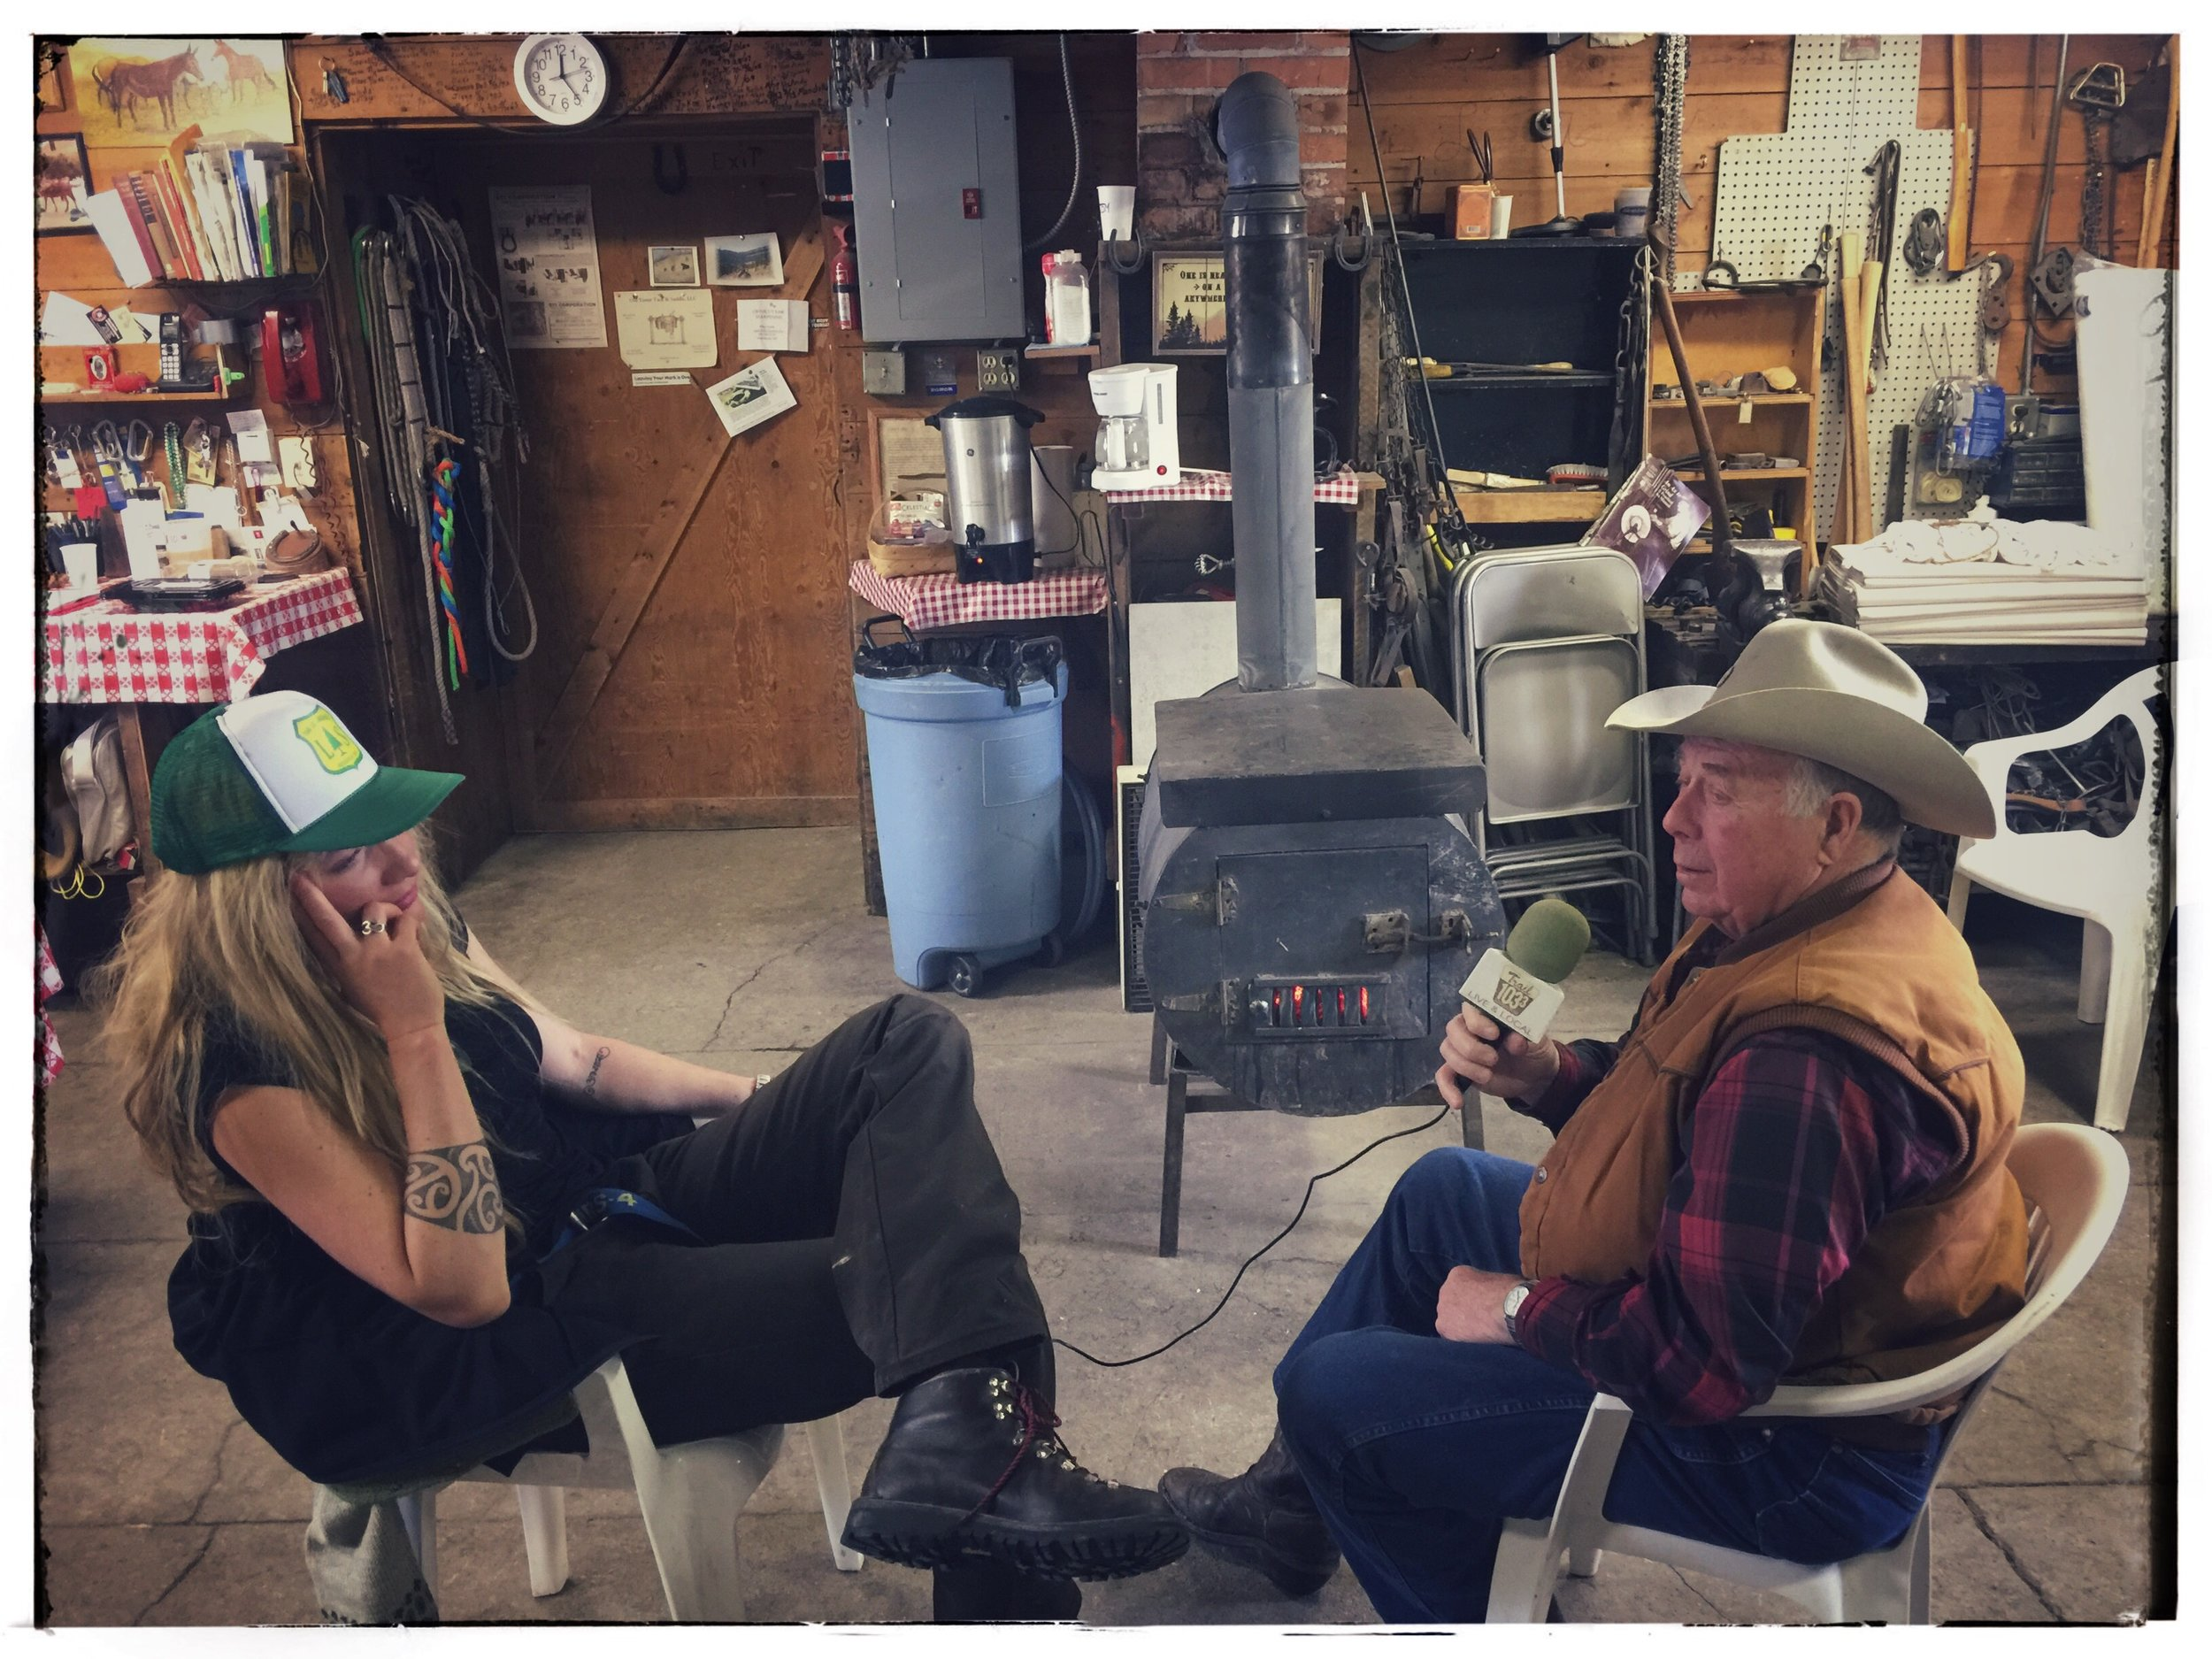 After two years of research & planning, I was finally able to join Smoke Elser for an interview inside Smoke's historic barn. I invite you to listen to stories from our local living cowboy legend, Smoke Elser. Smoke has spent the past 56 years living in the Bob Marshall wilderness packing mules and horses. This unique interview was recorded in Smoke's 113+ year old historic barn in the Rattlesnake wearing cowboy boots next to a crackling fire drinking muddy black coffee surrounded by thick snow & retired mules. This is a unique opportunity to pass down knowledge from a historic figure who arrived in Montana in 1955. Learn about the history of the Bob Marshall wilderness and some of Smoke's favorite places to camp after exploring over 55,000 miles of trail within the Bob. Learn about the first man who developed a map of the roadless land in the United States. Smoke is now 84 years old and he is currently teaching his 56th annual mule packing course in his barn right here in Missoula.